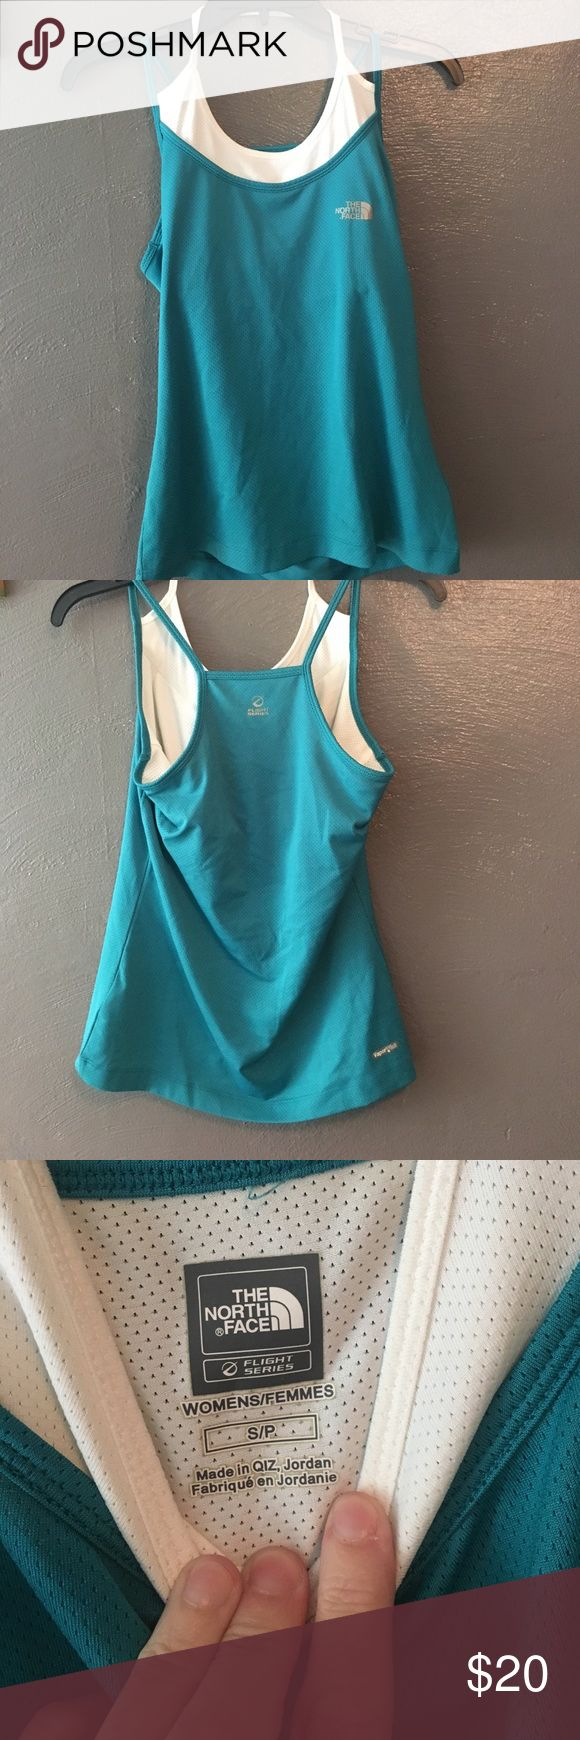 The north face workout top. Cute top. Vapor wick. Great for working out or hiking. Built in bra. Excellent condition The North Face Tops Tank Tops